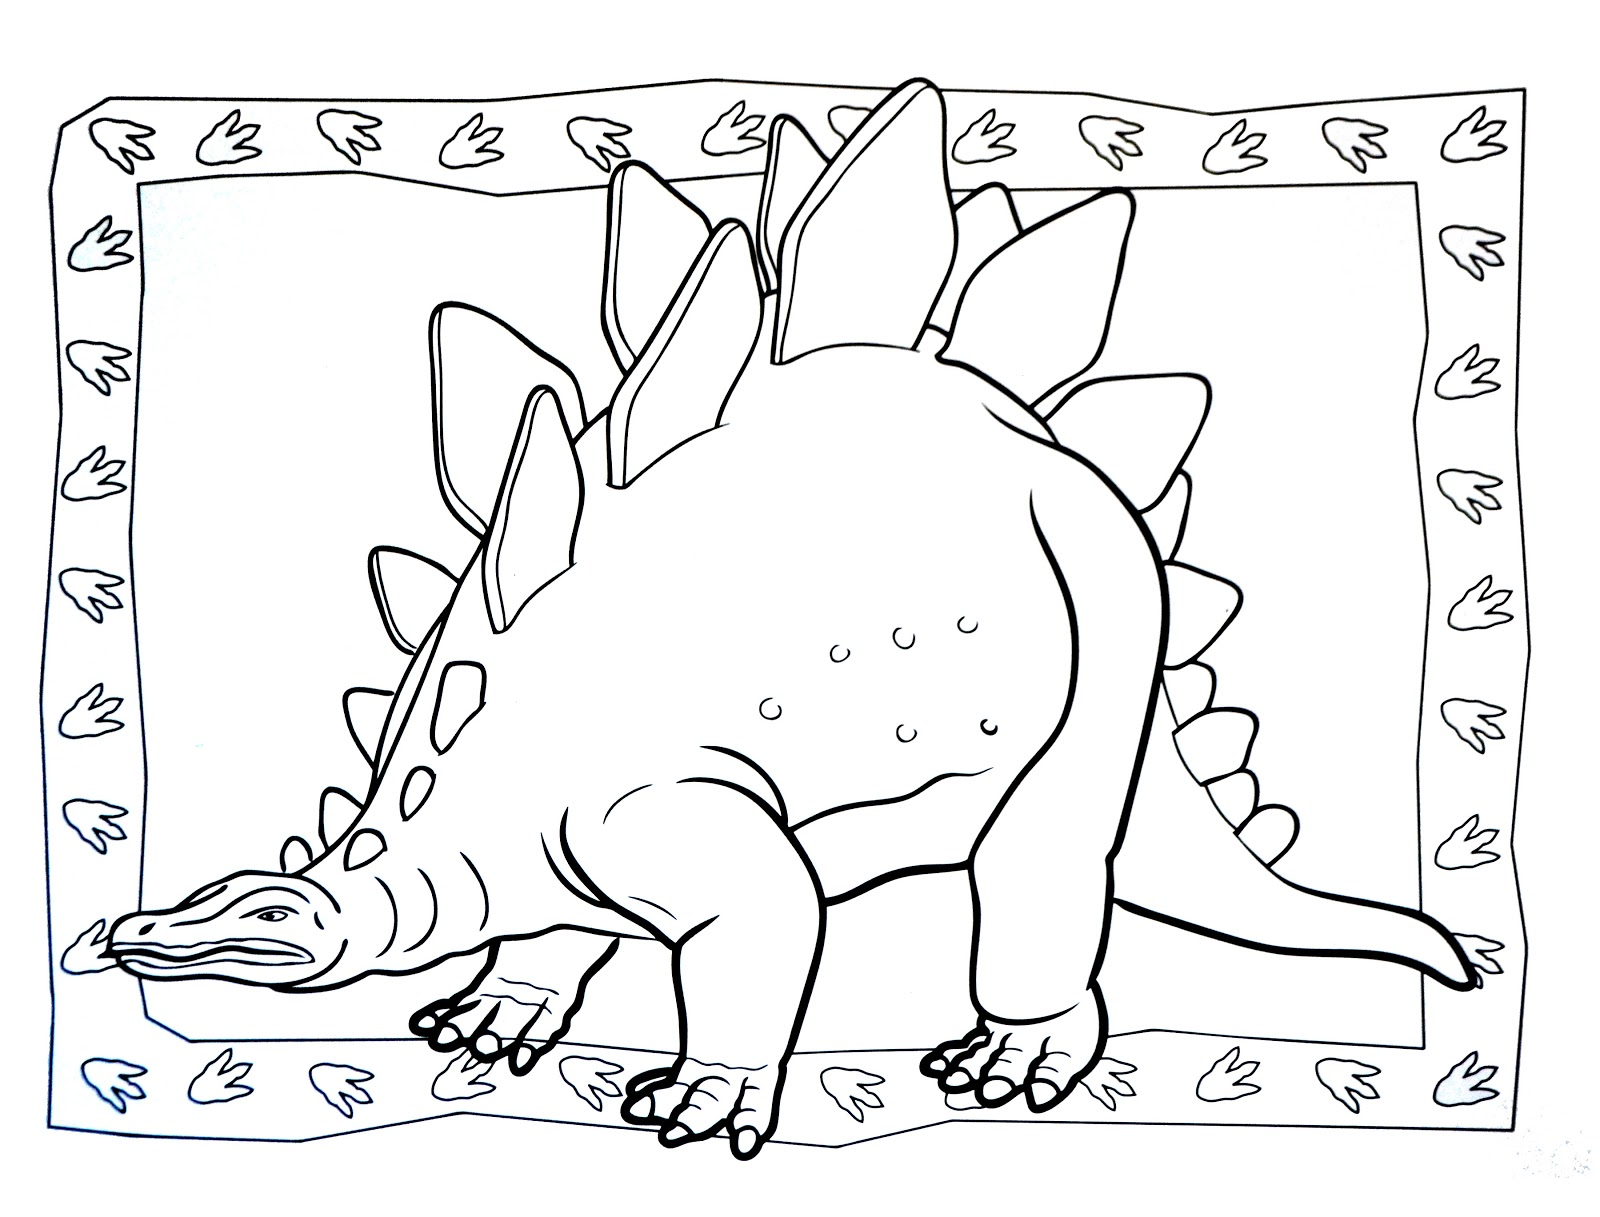 Dinosaurs coloring pages 44